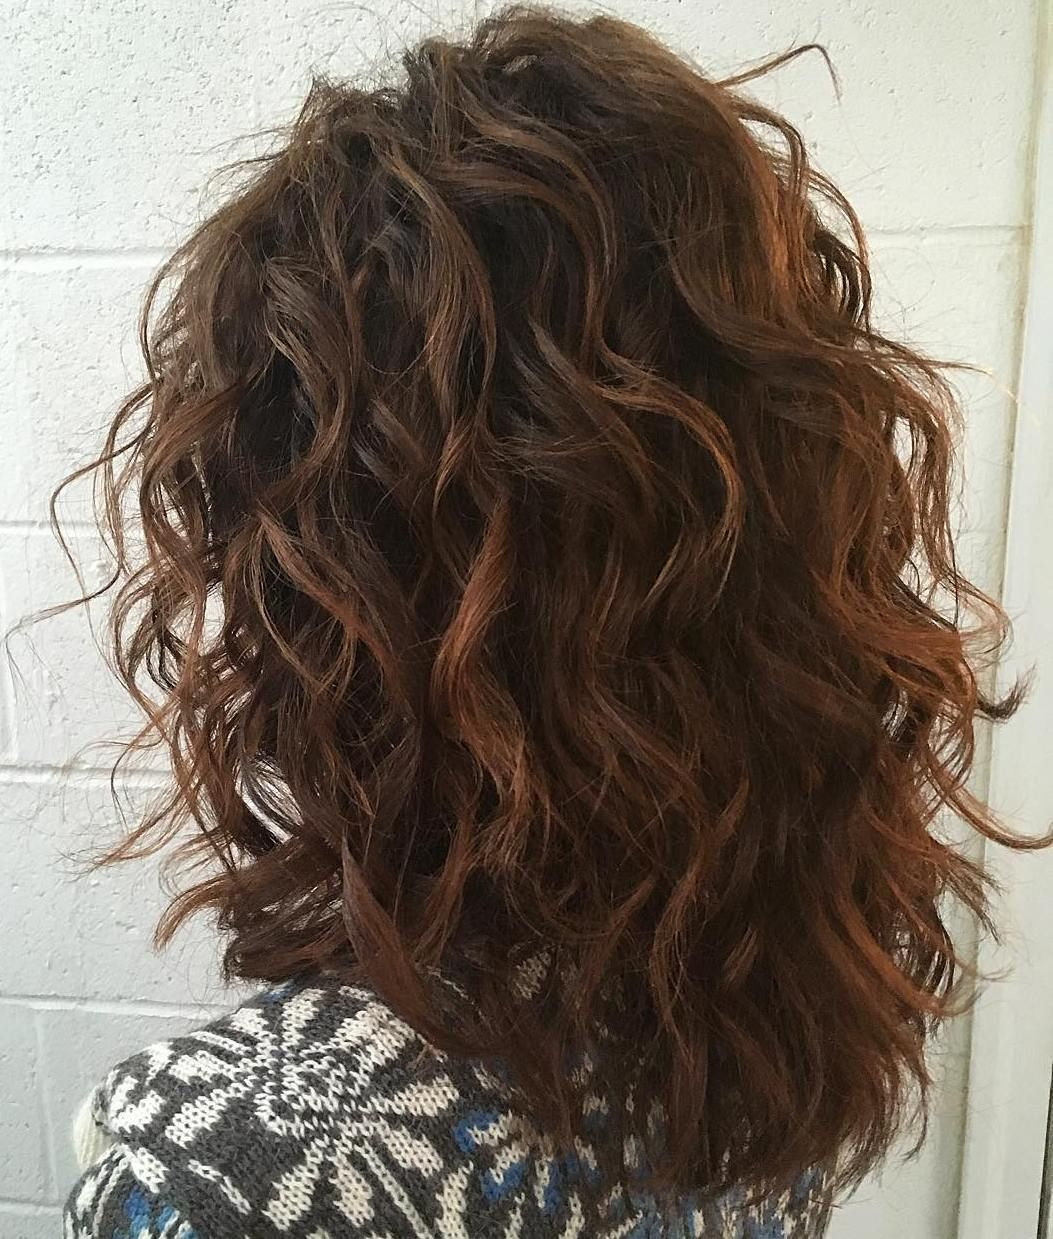 Hairstyle For Thick Wavy Hair Thick Wavy Hair Natural Wavy Hair Haircut For Thick Hair